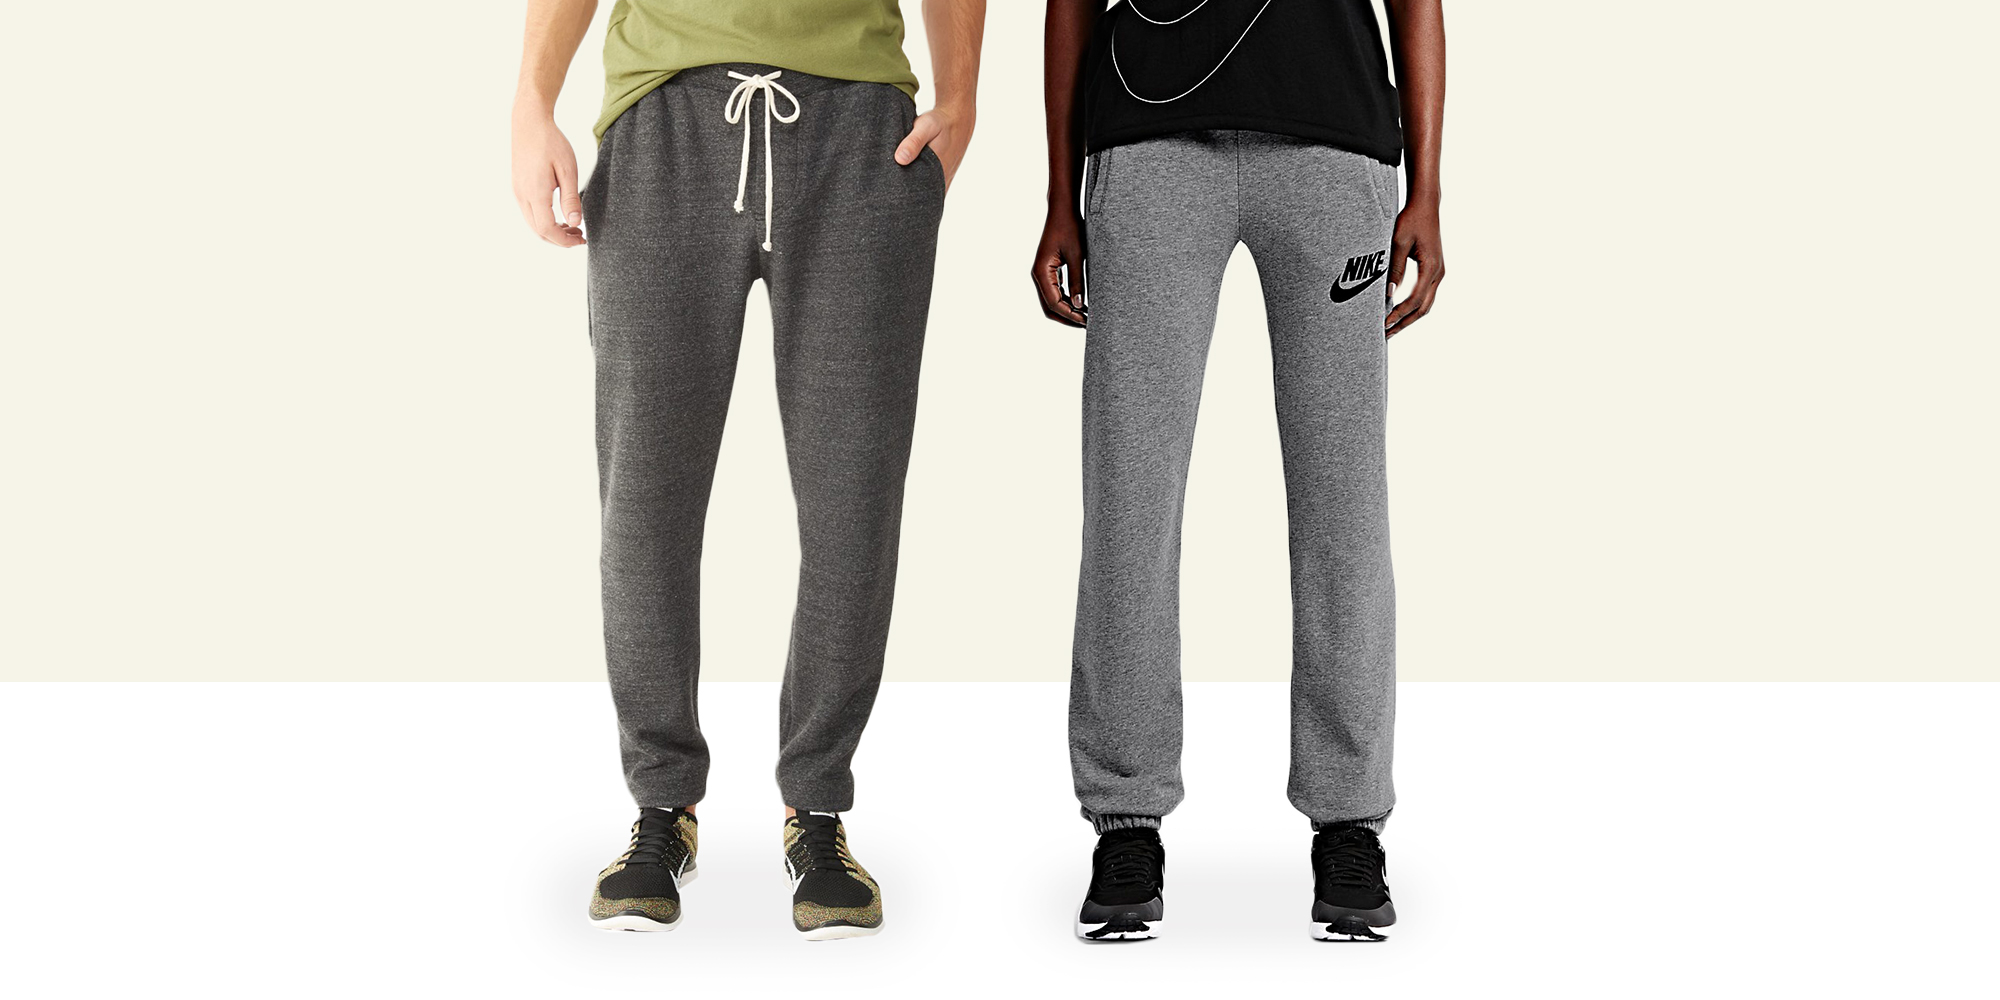 Even five years ago, we would have laughed off the idea of sweatpants as a vital part of a modern guy's wardrobe. The idea of